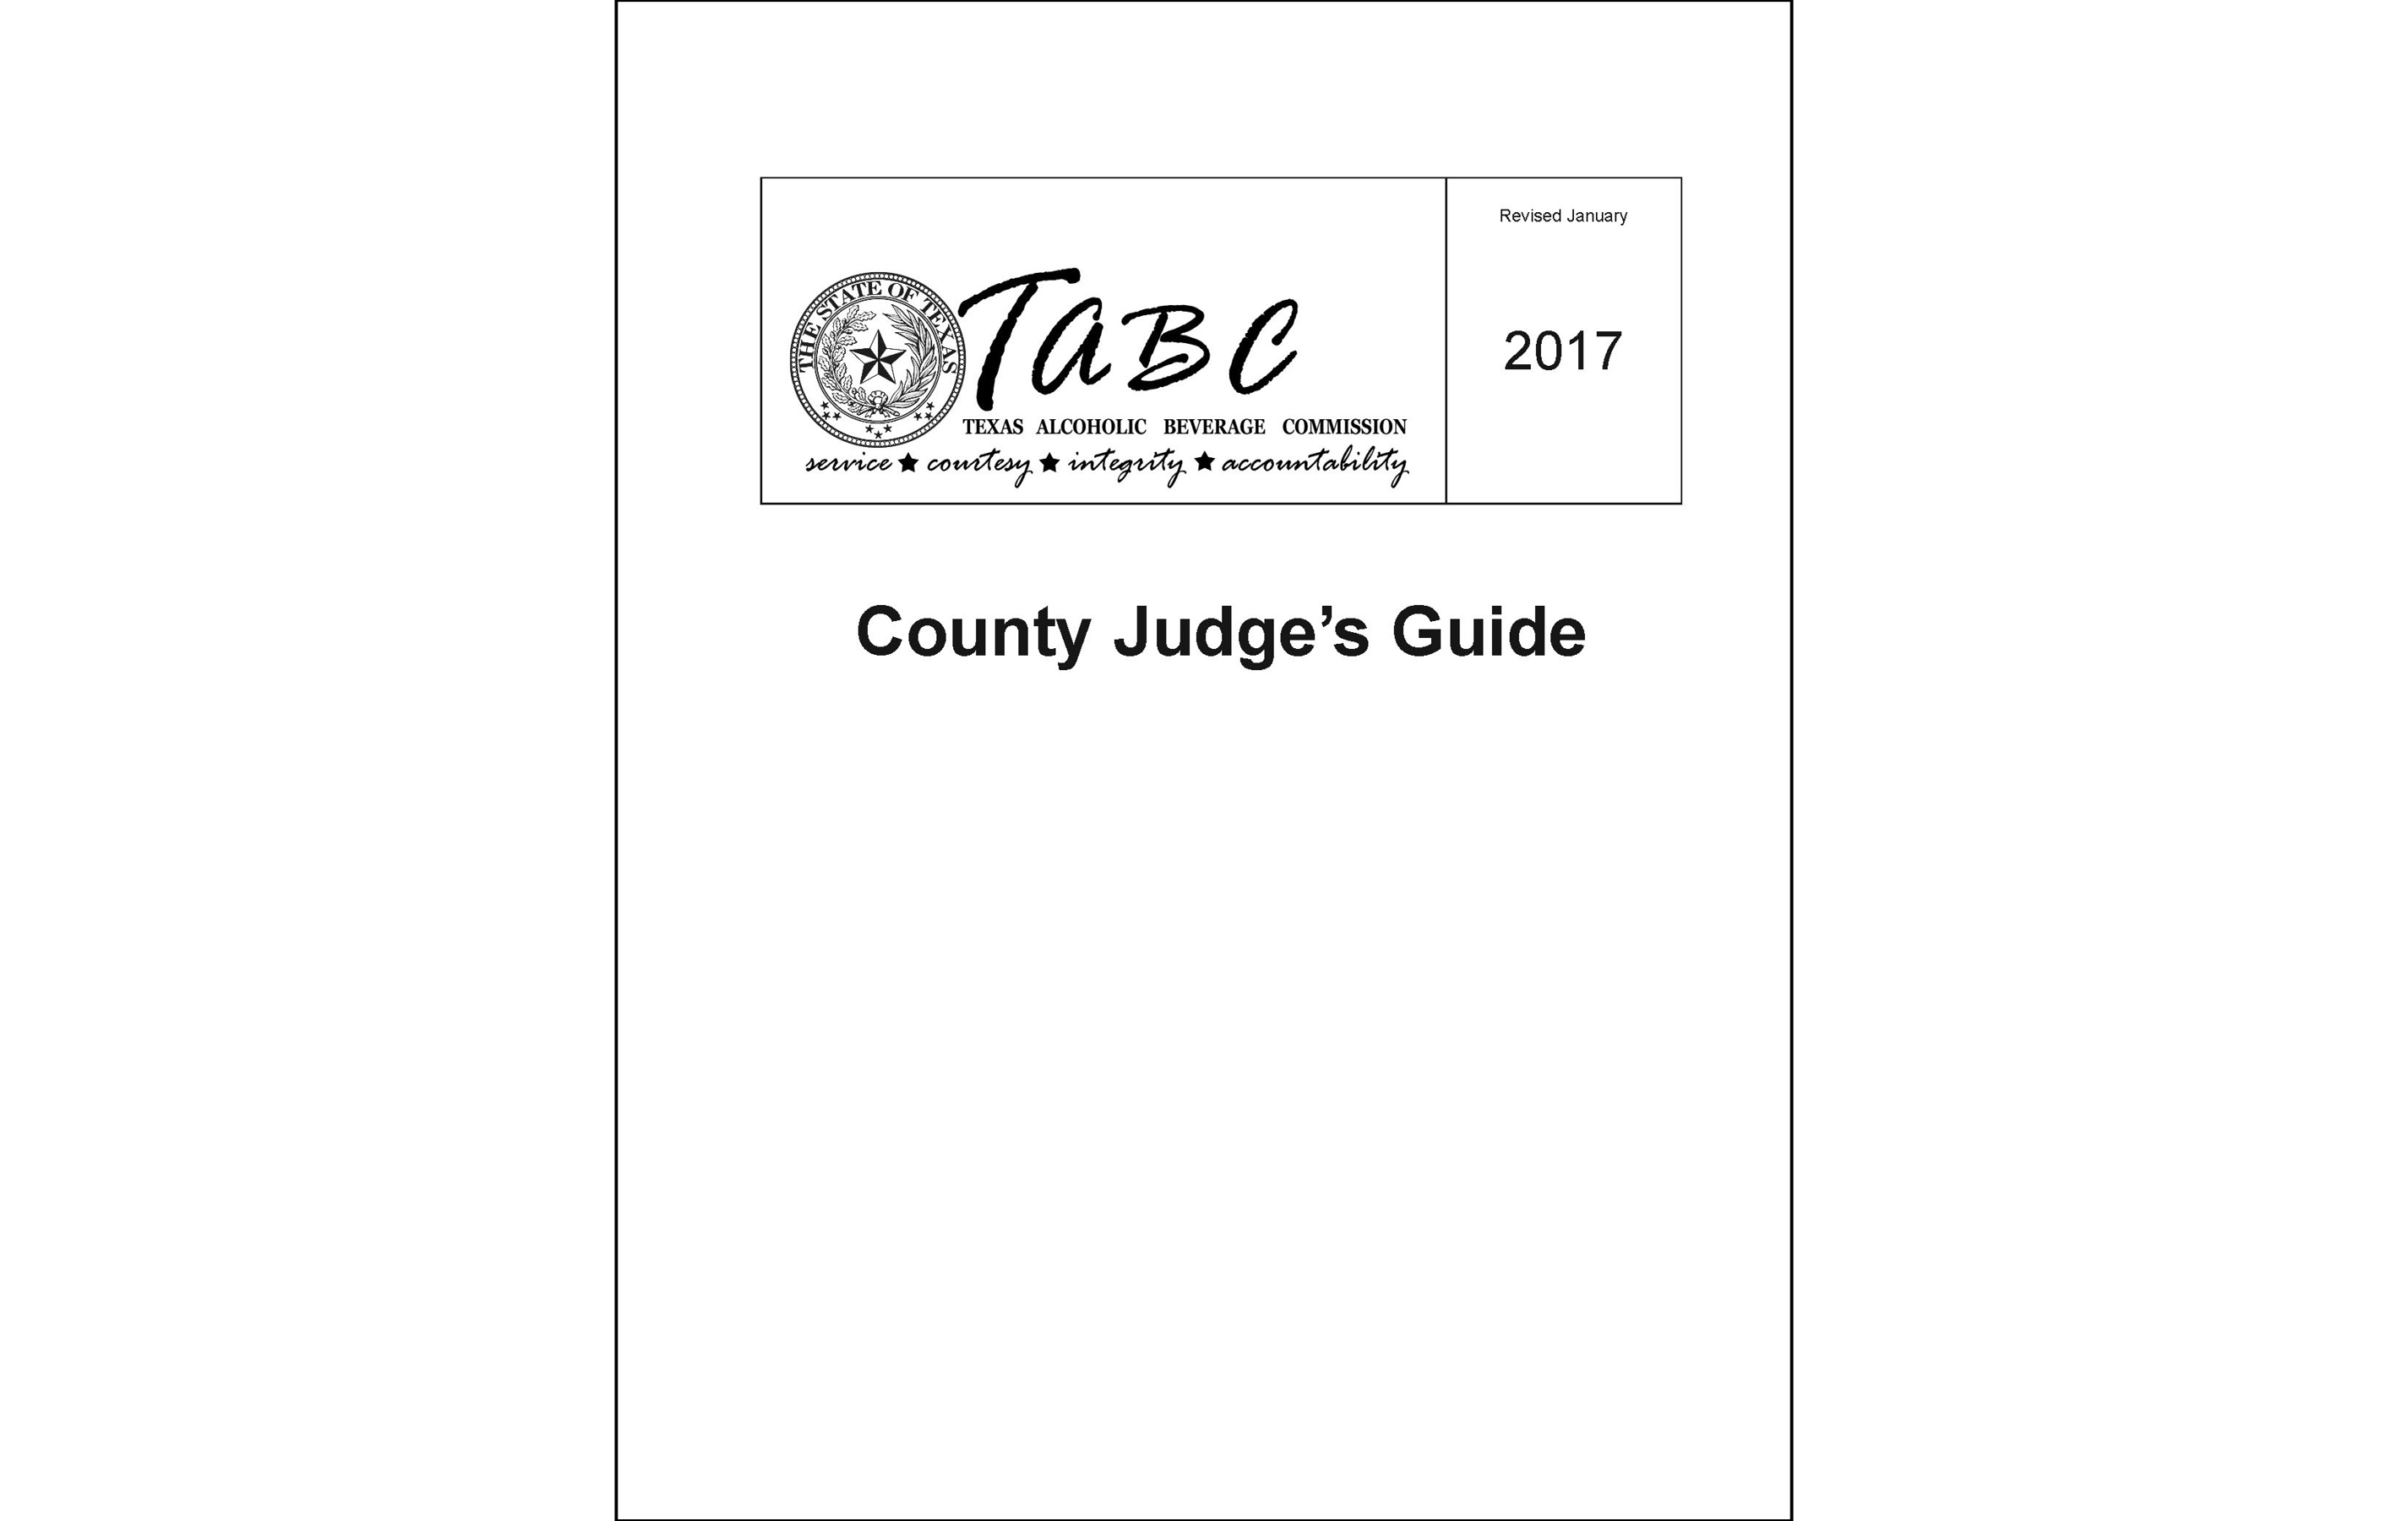 County Judge's Guide